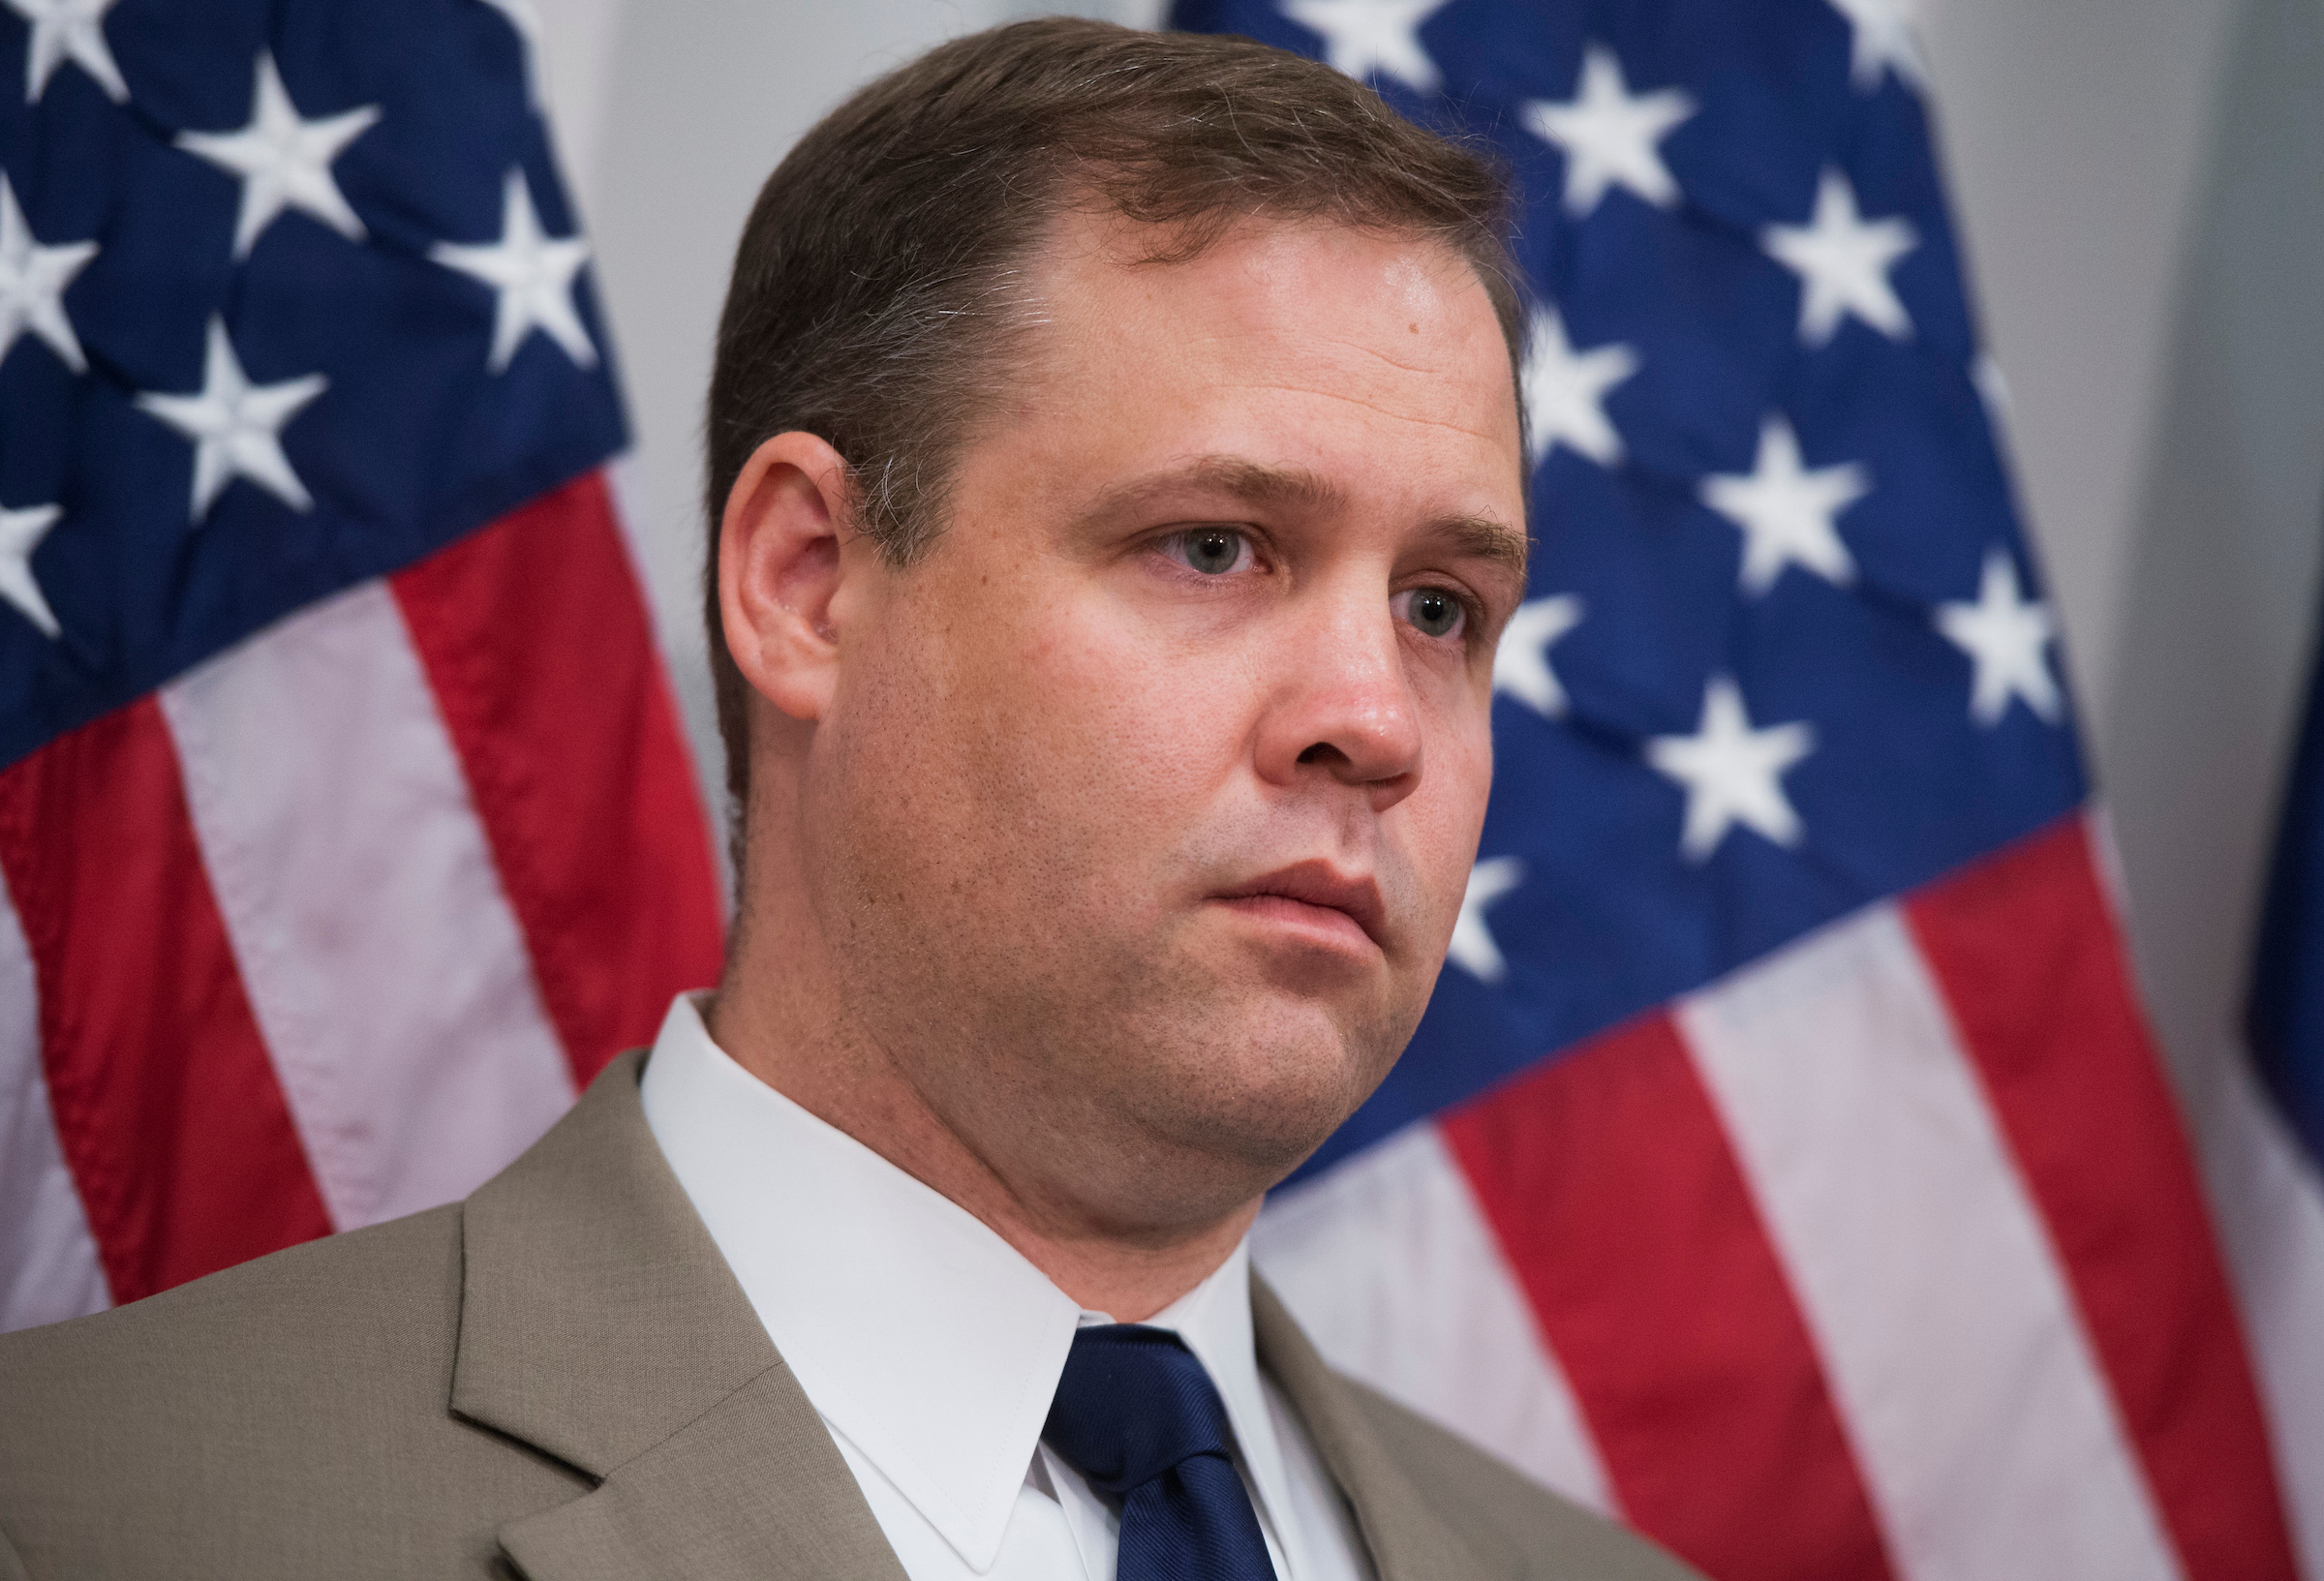 UNITED STATES - MAY 21: Rep. Jim Bridenstine, R-Okla., attends a news conference in the Capitol where he and others primarily expressed support for victims of the Oklahoma tornado. (Photo By Tom Williams/CQ Roll Call)